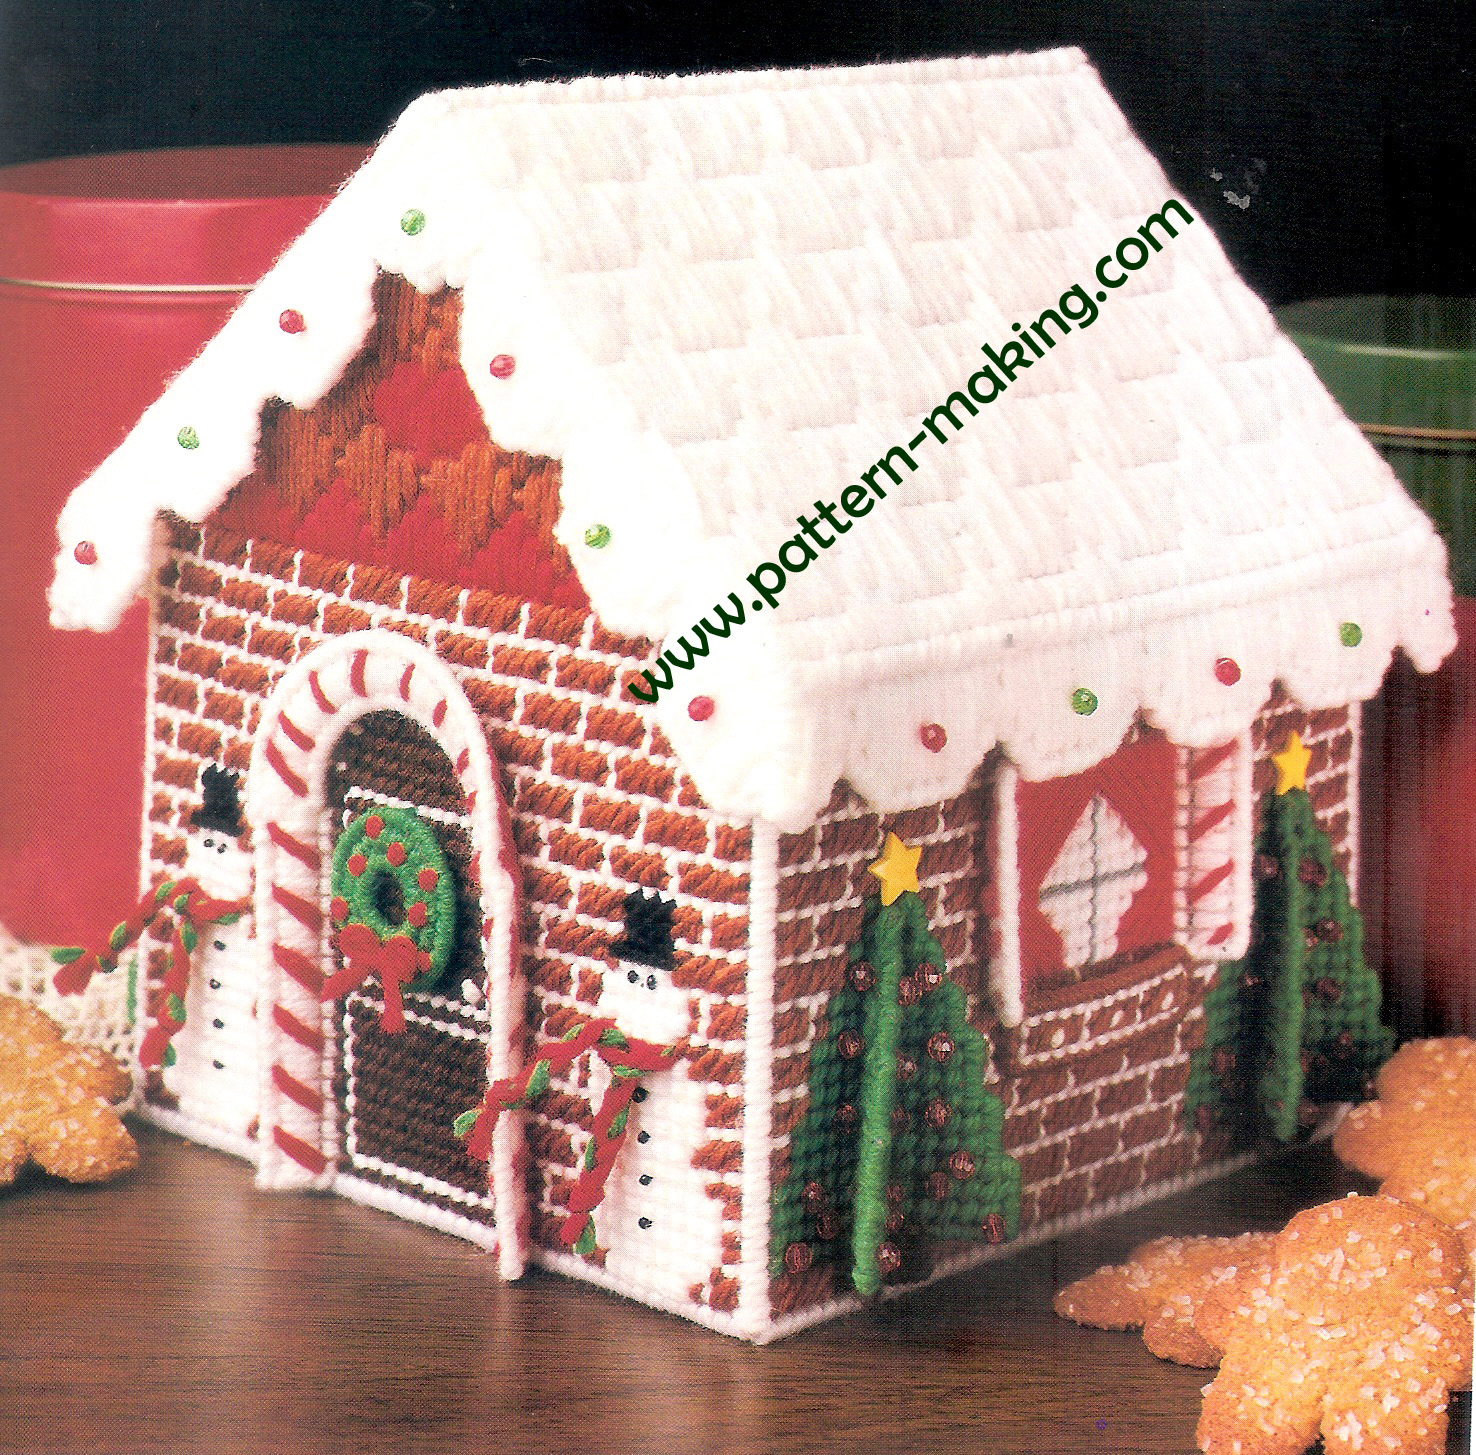 Turn old plastic playhouse into gingerbread house. Turn old plastic playhouse into gingerbread house. Visit. Discover ideas about Christmas Gingerbread House. Turn old plastic playhouse into gingerbread house. Christmas Gingerbread